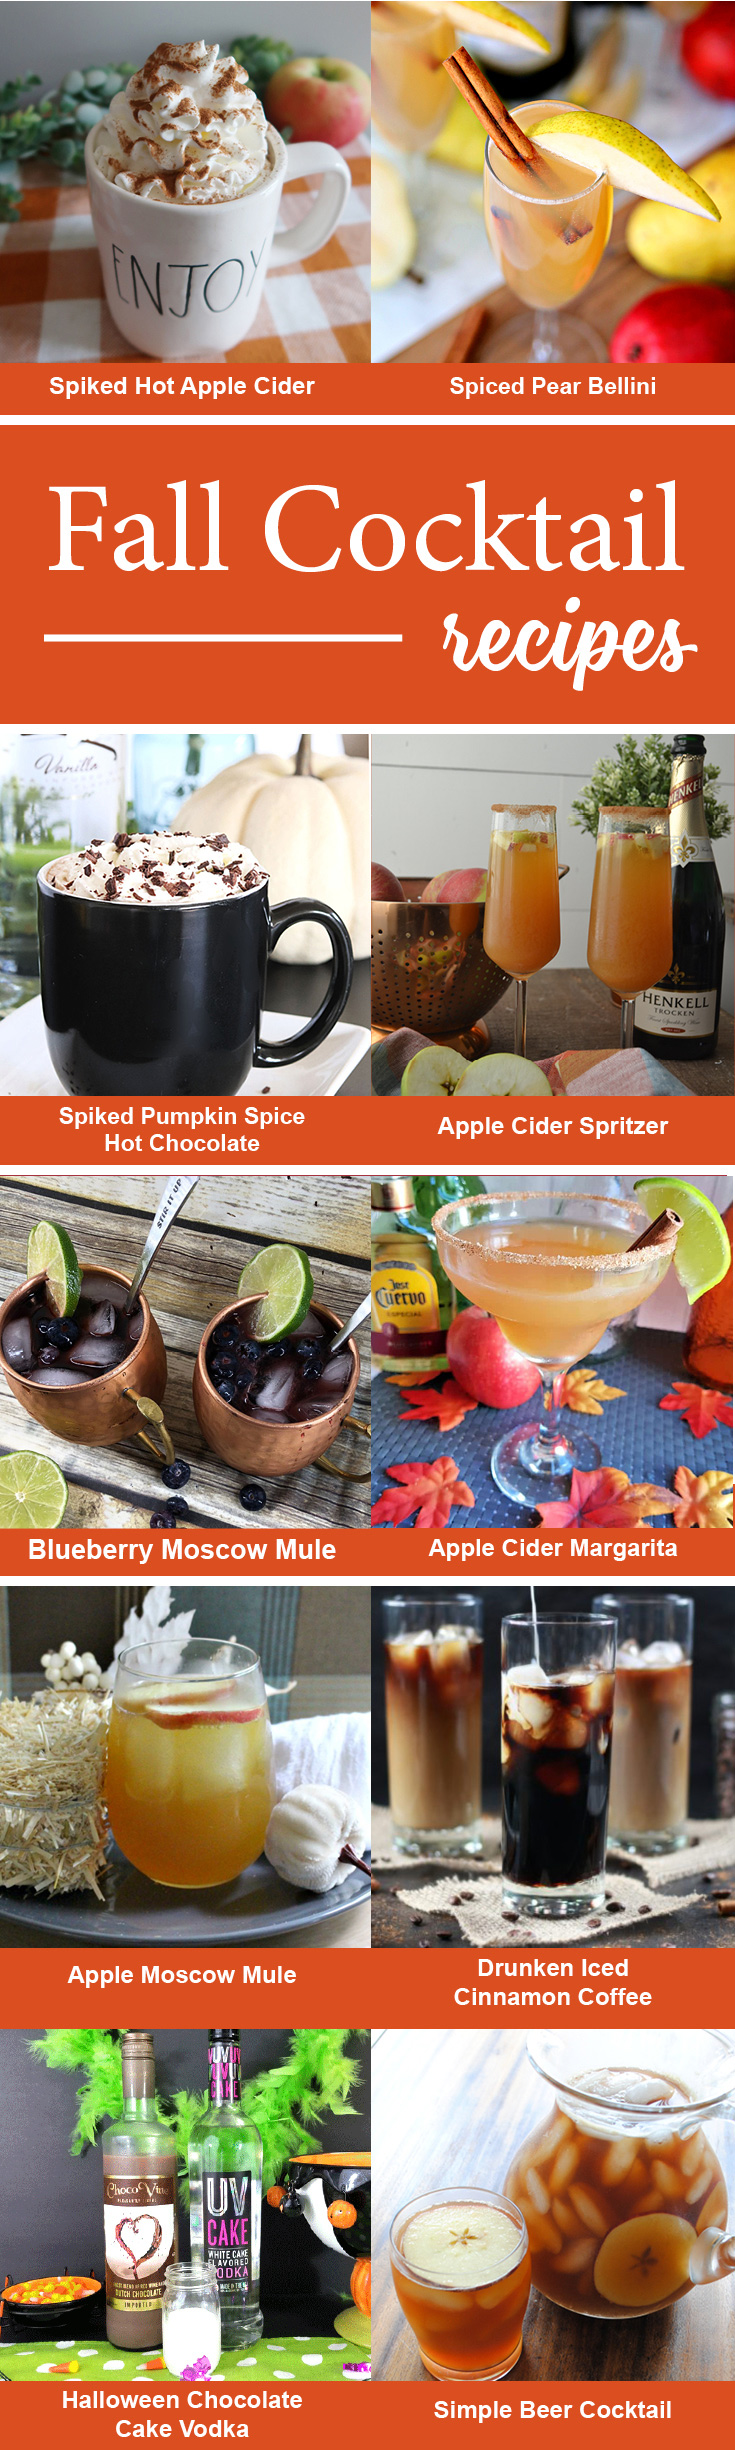 10 Fall Cocktails